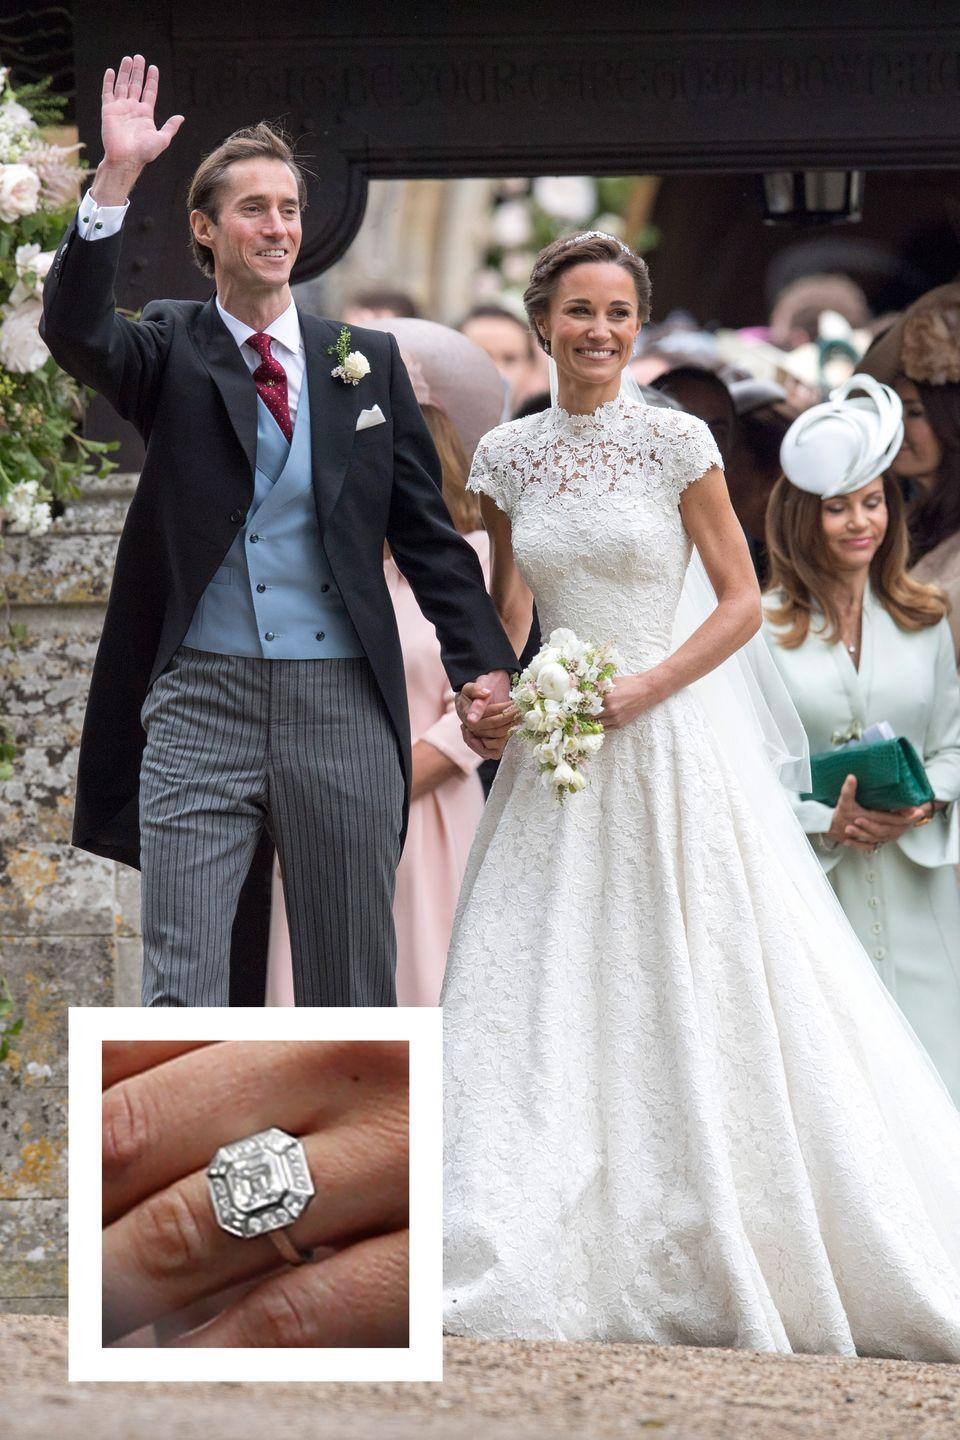 """<p><a href=""""https://www.townandcountrymag.com/society/tradition/news/a7031/pippa-middletons-fiance-james-matthews/"""" rel=""""nofollow noopener"""" target=""""_blank"""" data-ylk=""""slk:Pippa's now-husband James Matthews"""" class=""""link rapid-noclick-resp"""">Pippa's now-husband James Matthews</a> proposed in July 2016 with <a href=""""https://www.townandcountrymag.com/style/jewelry-and-watches/news/a7033/pippa-middleton-engagement-ring/"""" rel=""""nofollow noopener"""" target=""""_blank"""" data-ylk=""""slk:a statement engagement ring: an Asscher cut diamond"""" class=""""link rapid-noclick-resp"""">a statement engagement ring: an Asscher cut diamond</a> surrounded by an octogonal halo of smaller diamonds. The center stone is reported to be about three carats in size, and the entire ring is estimated to be worth just over $260,000, <a href=""""http://people.com/royals/all-about-pippa-middletons-engagement-ring/"""" rel=""""nofollow noopener"""" target=""""_blank"""" data-ylk=""""slk:People reports."""" class=""""link rapid-noclick-resp""""><em>People</em> reports.</a> The duo wed <a href=""""https://www.townandcountrymag.com/the-scene/weddings/a9207132/pippa-middleton-wedding-updates/"""" rel=""""nofollow noopener"""" target=""""_blank"""" data-ylk=""""slk:in a fairytale wedding ceremony in May 2017."""" class=""""link rapid-noclick-resp"""">in a fairytale wedding ceremony in May 2017.</a></p>"""